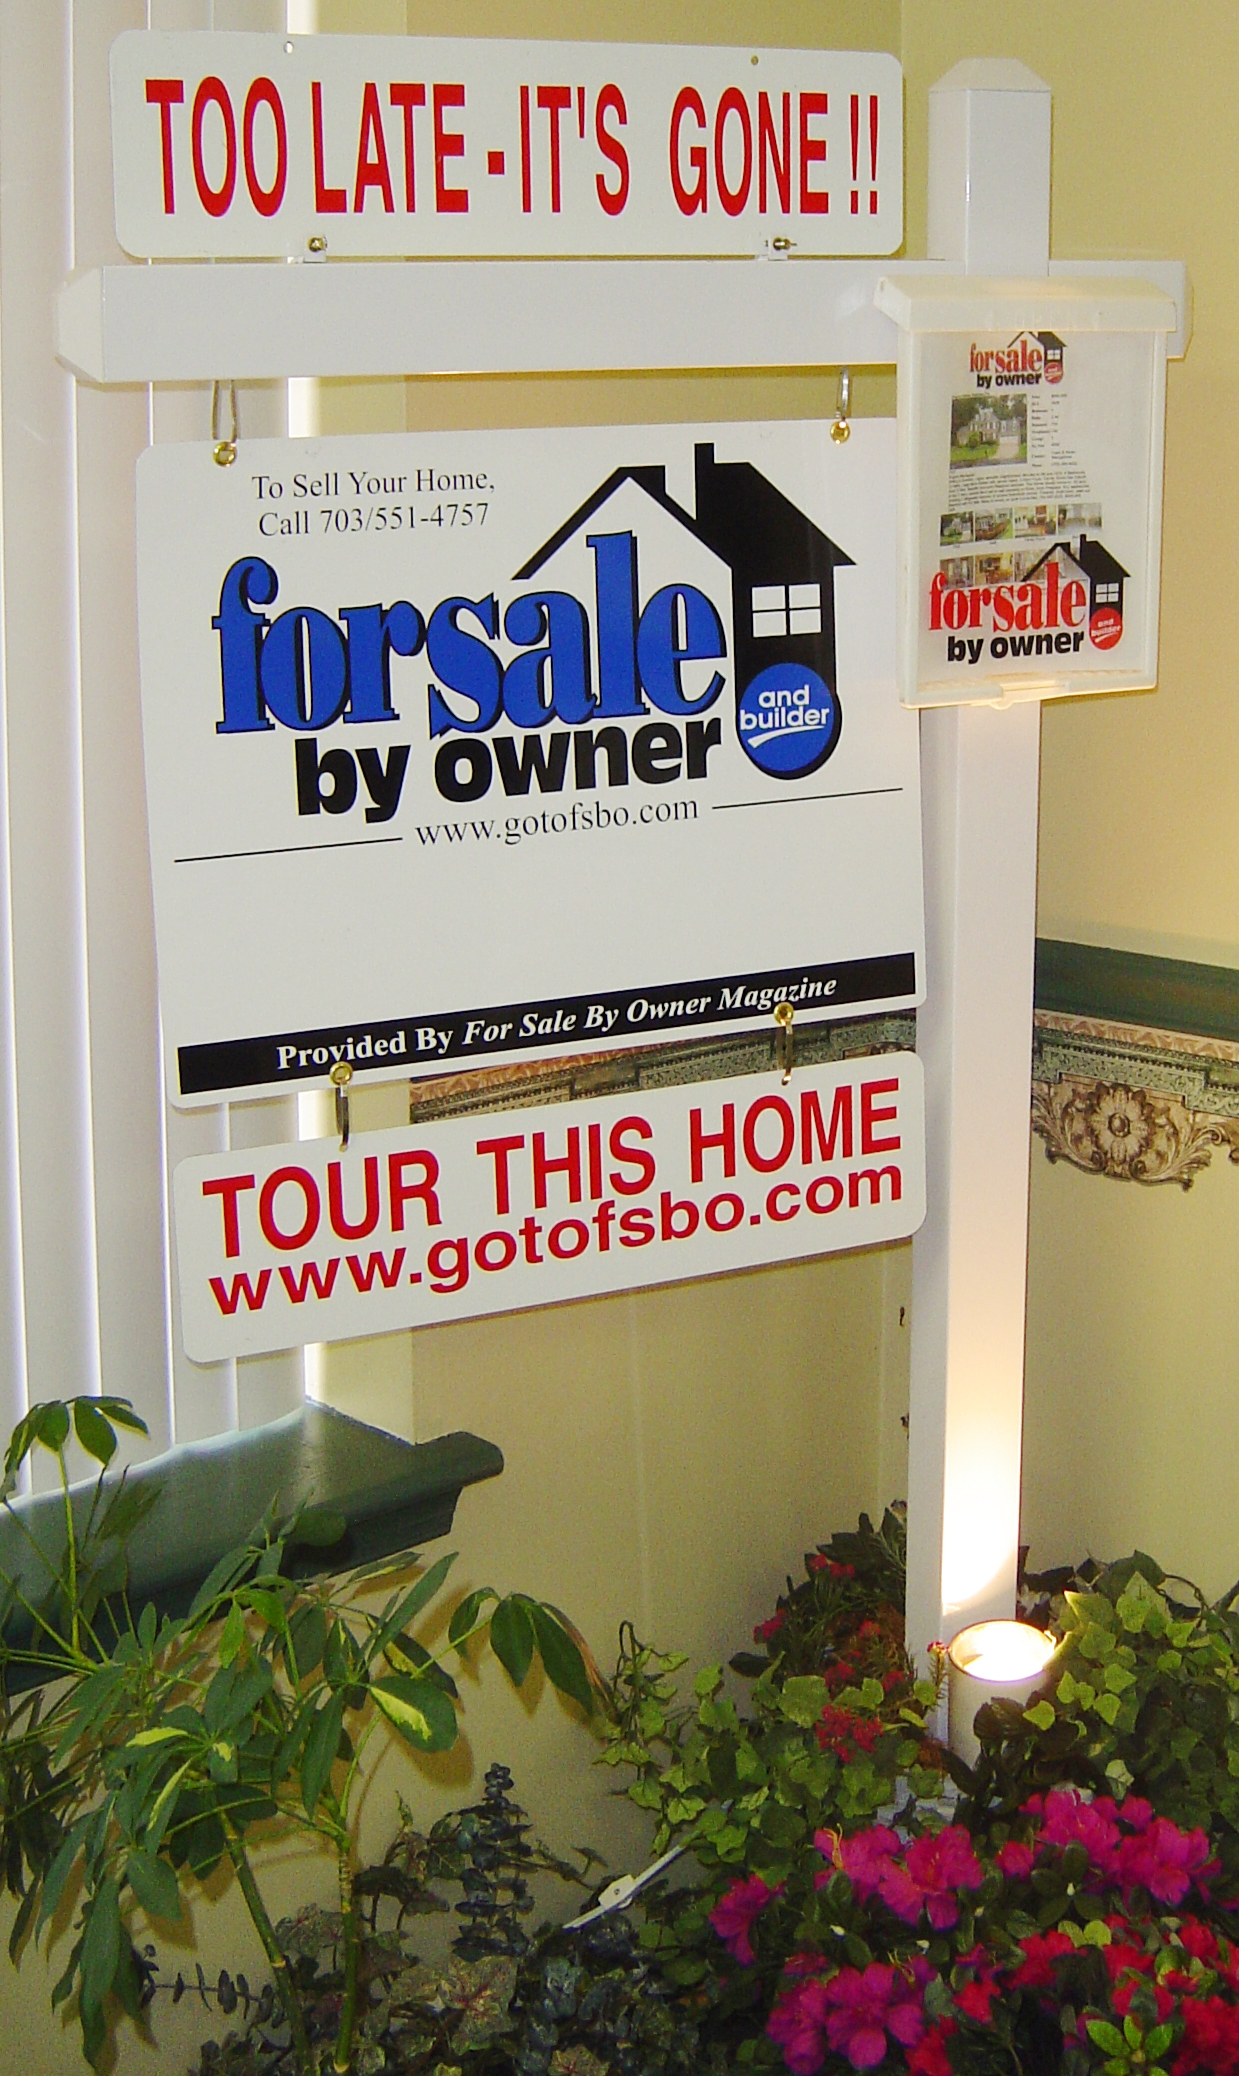 For Sale By Owner Post Sign Virginia FSBO Flat Fee MLS Listing Signs